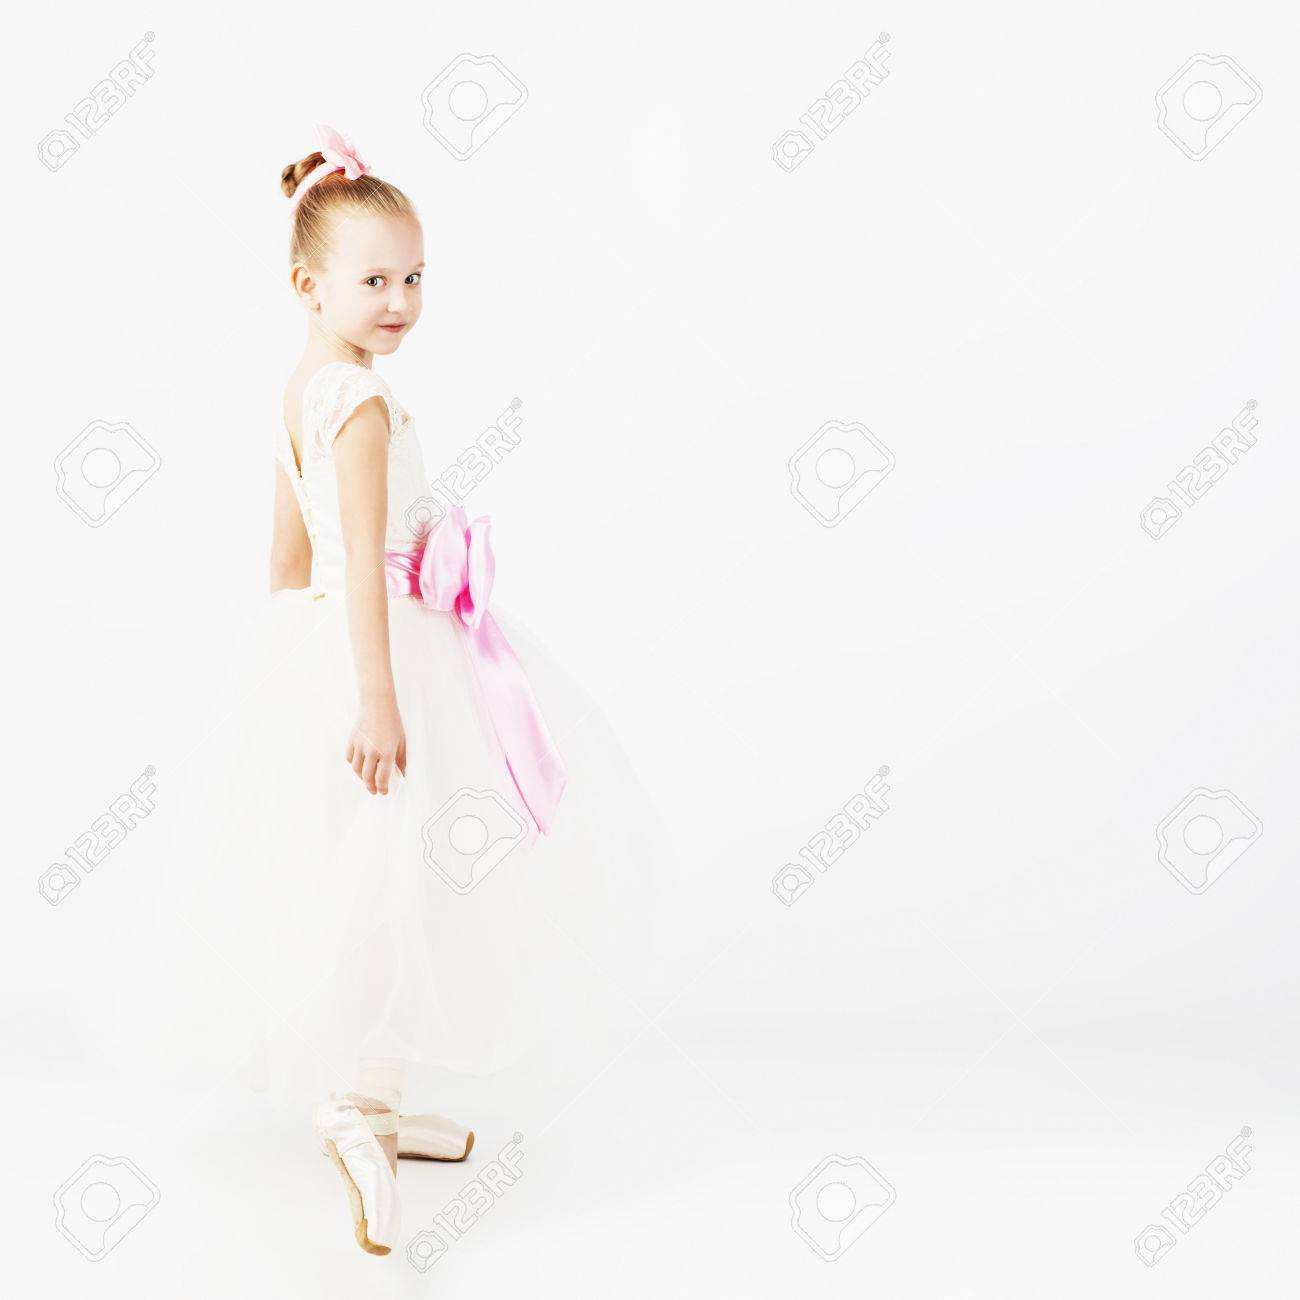 1fc82e60c Beautiful Ballet Dancer Isolated On White Background. Slender ...